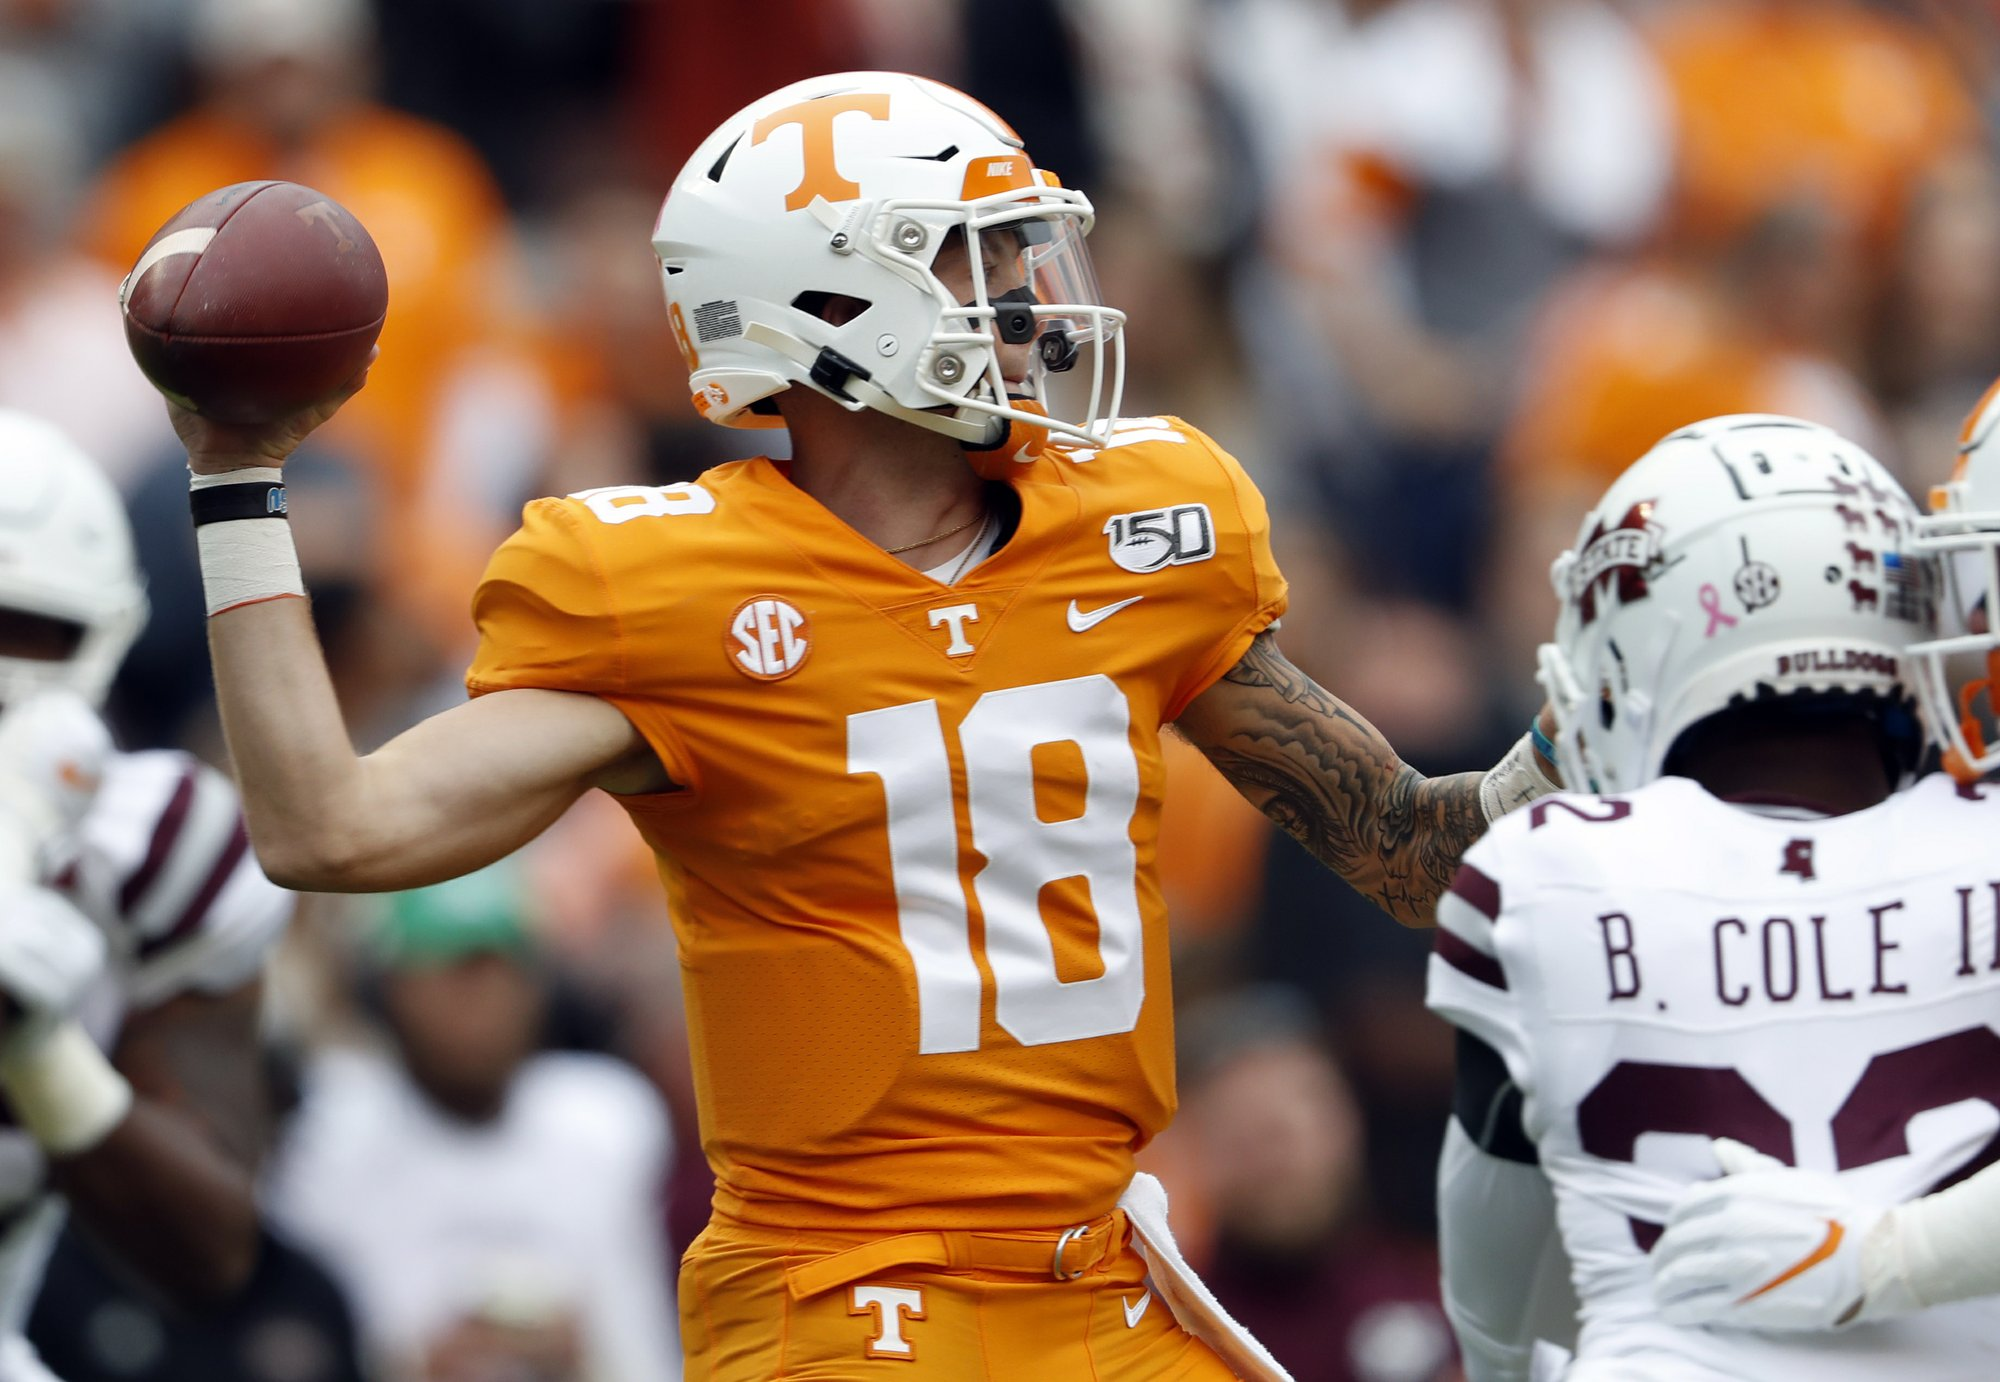 Vols confident QB Maurer will play against No. 1 Alabama